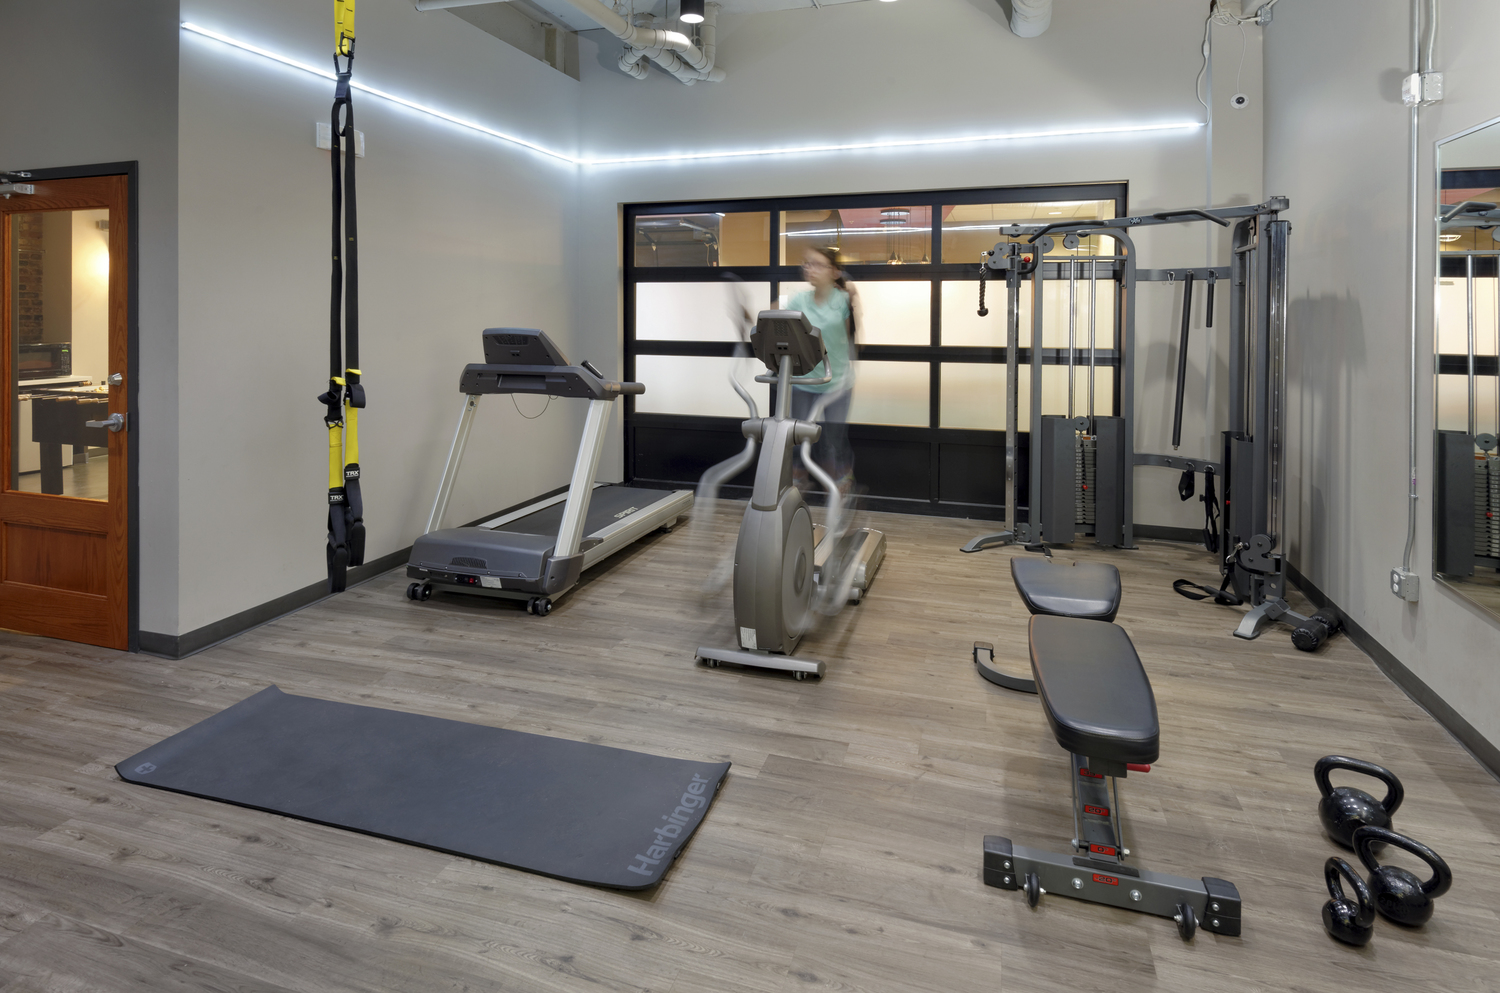 The U student gym amenities